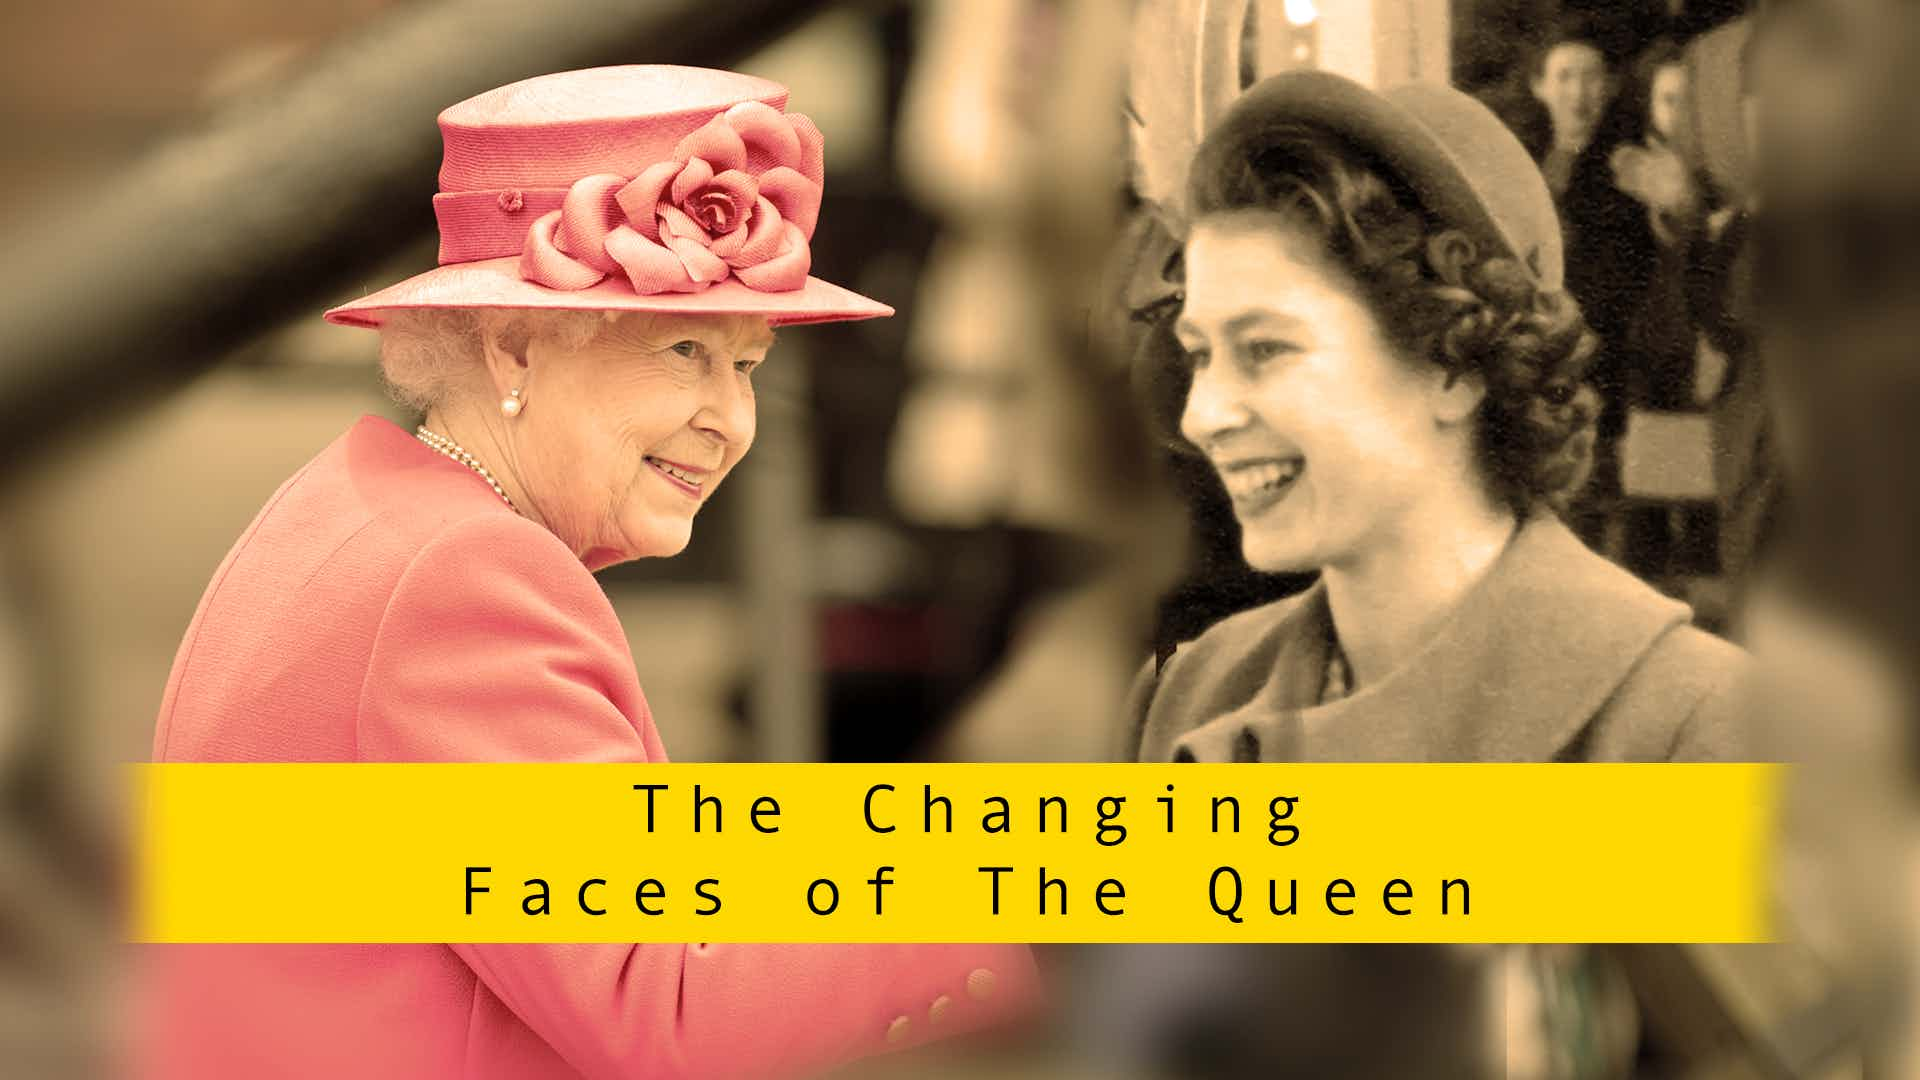 The Changing Face of the Queen